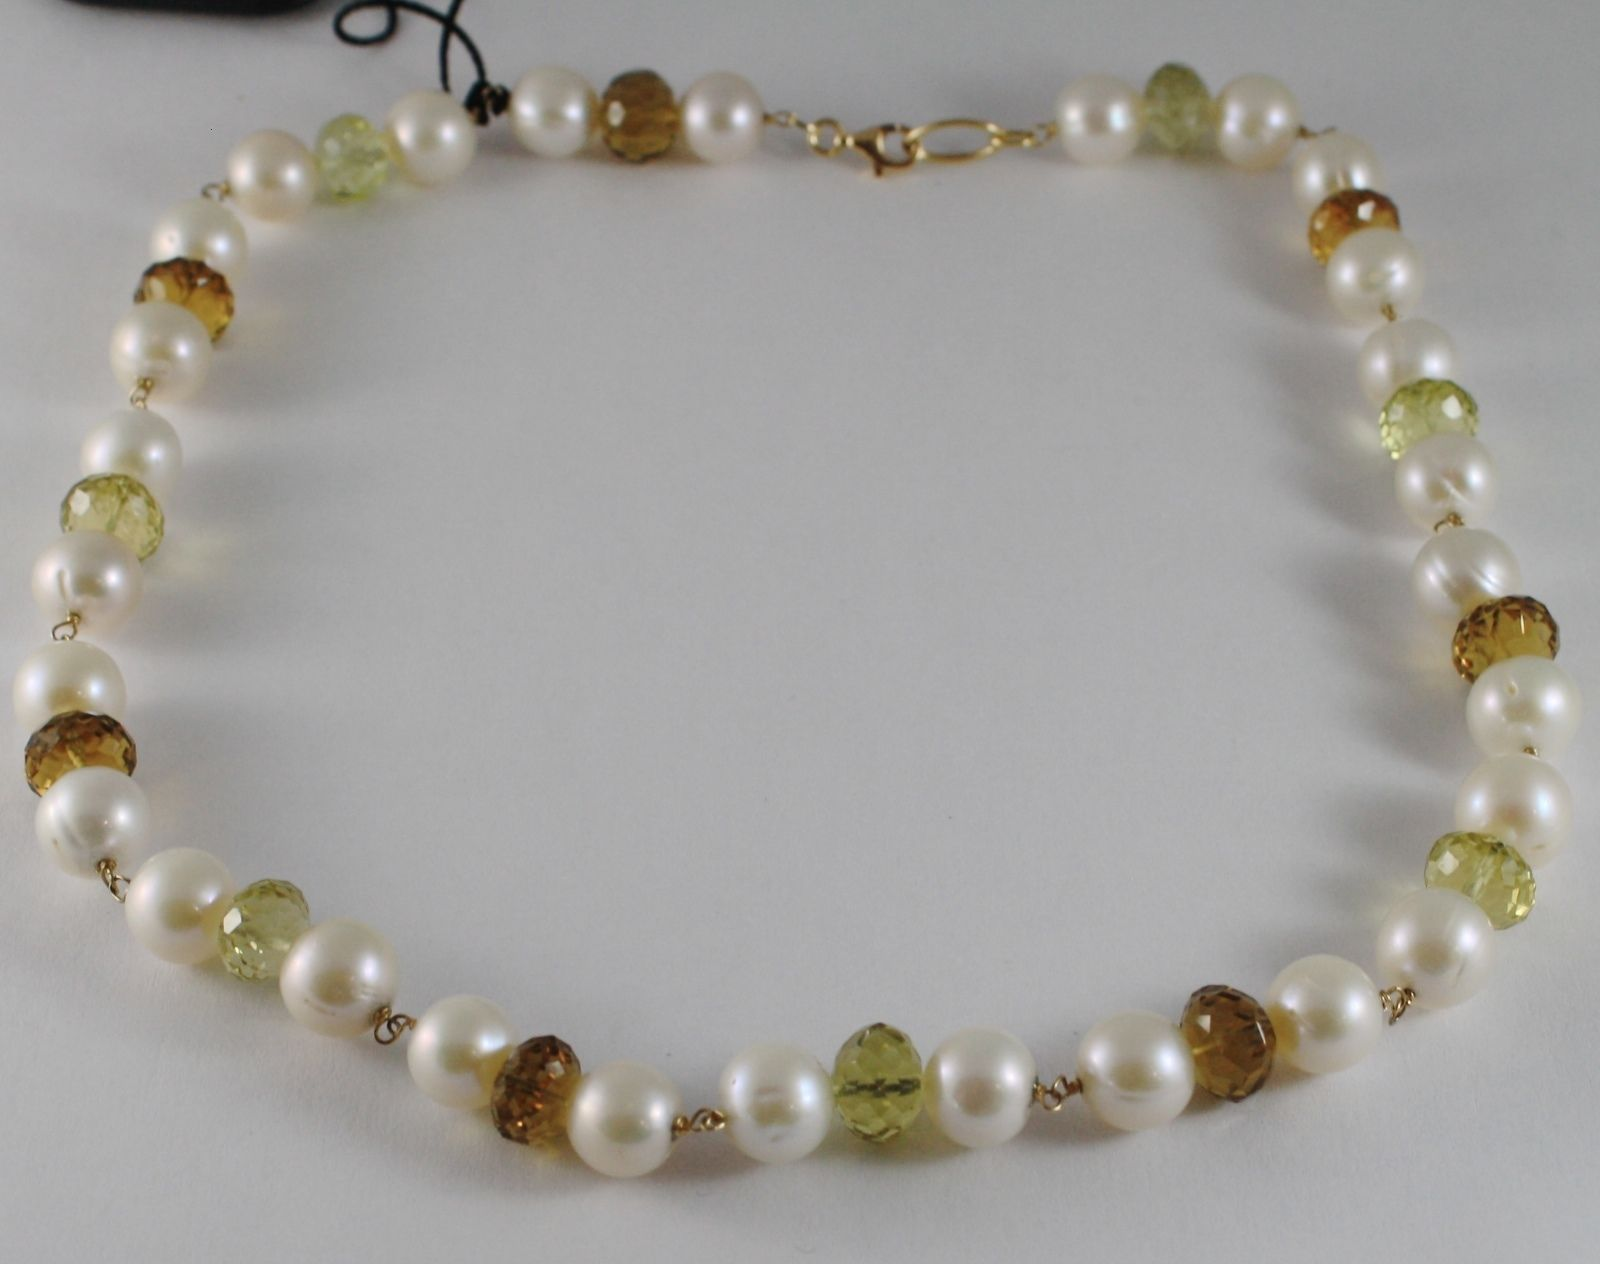 18K YELLOW GOLD NECKLACE WHITE PEARLS CUSHION BEER BROWN LEMON QUARTZ ITALY MADE